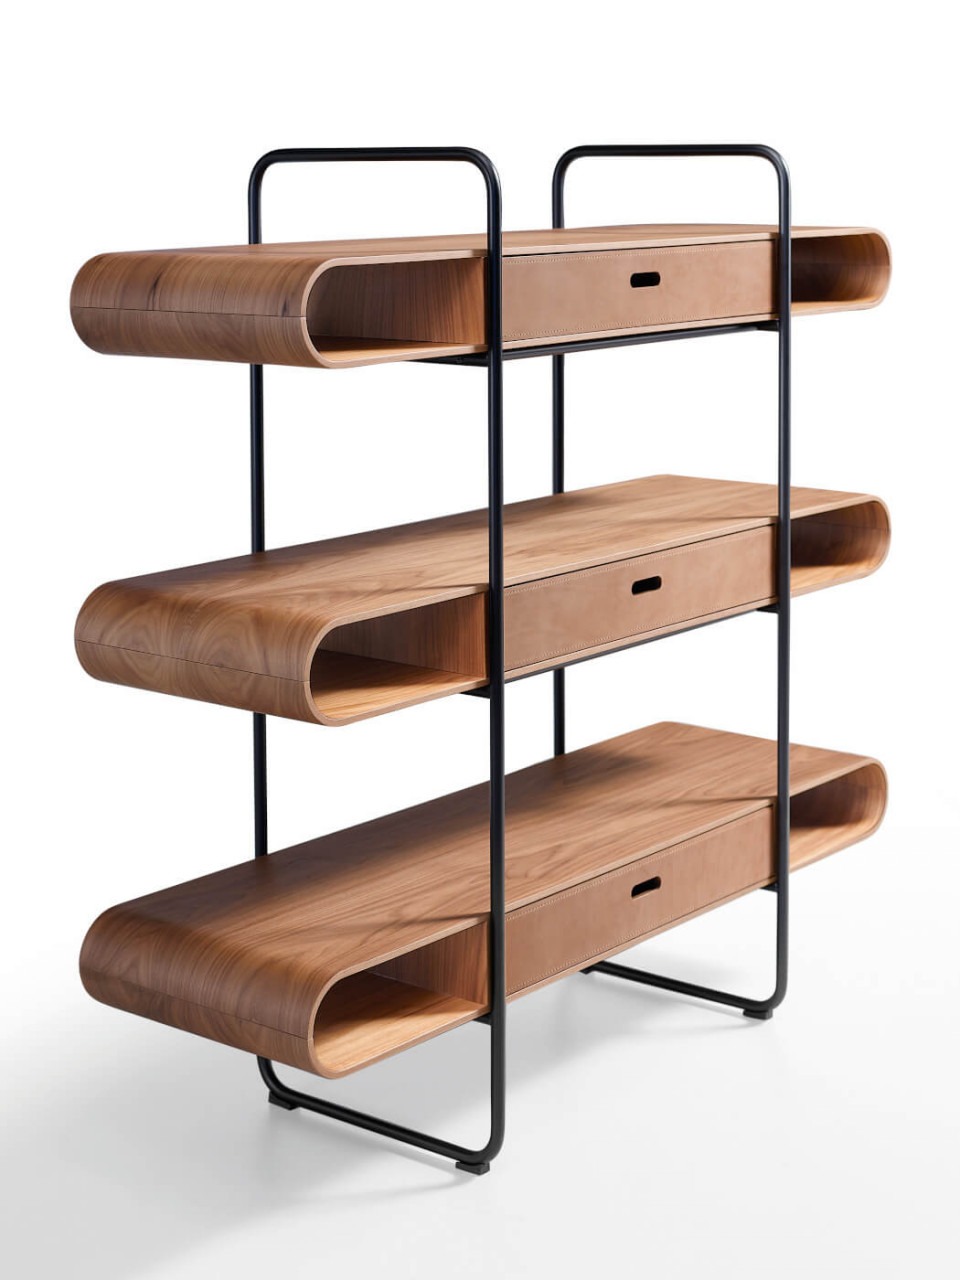 Apelle bookcase with three shelves